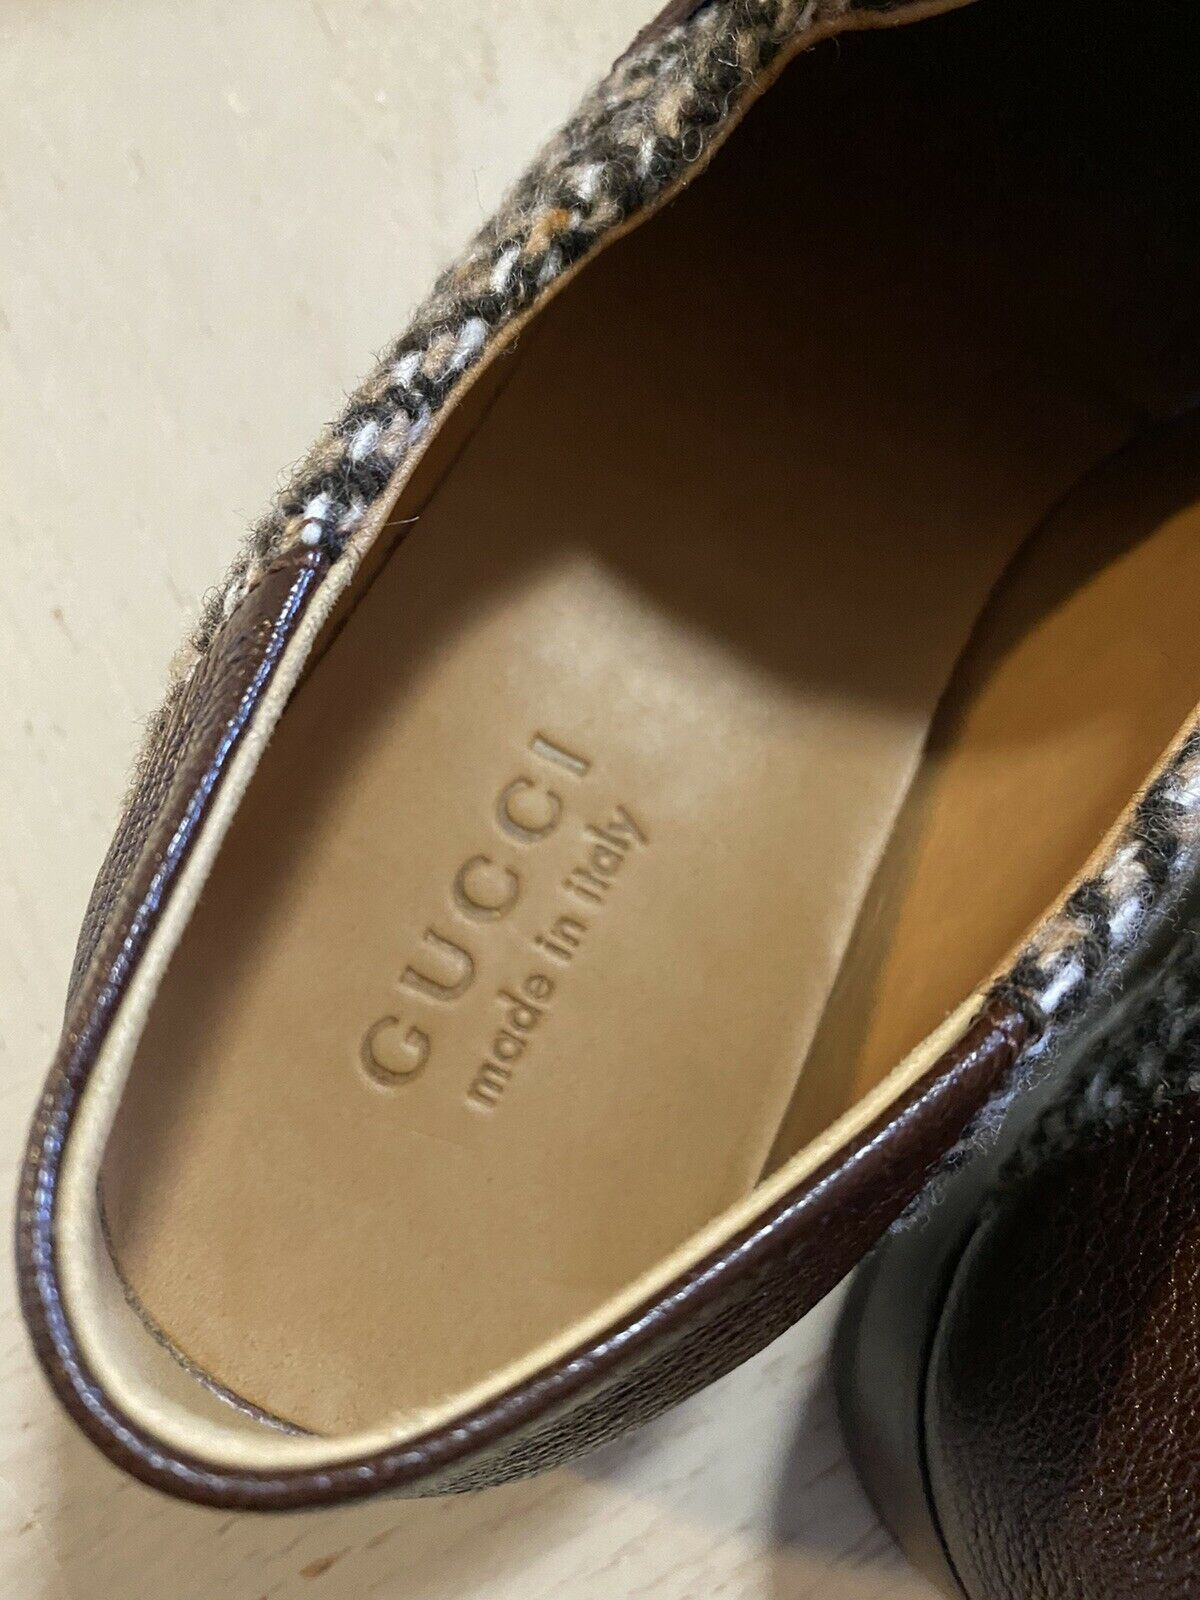 NIB $890 Gucci Mens Leather/Wool Loafers Sandal Shoes Brown 9.5 US / 8.5 UK